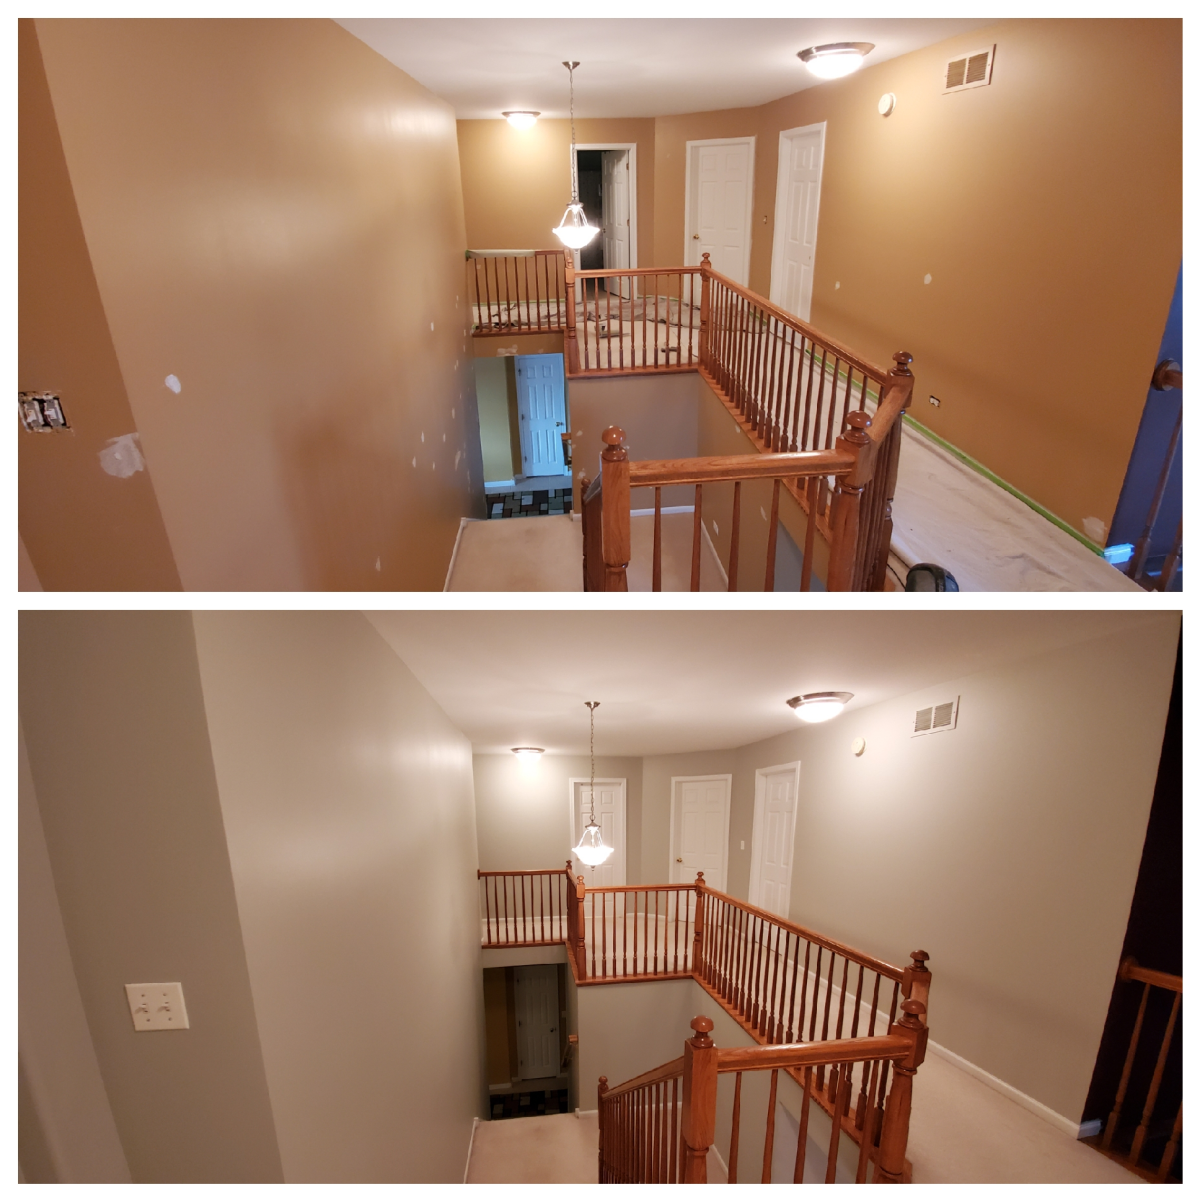 A stairway and hallway I painted with Sherwin Williams Repose Gray. The color is more grayish in a room with bright lighting.